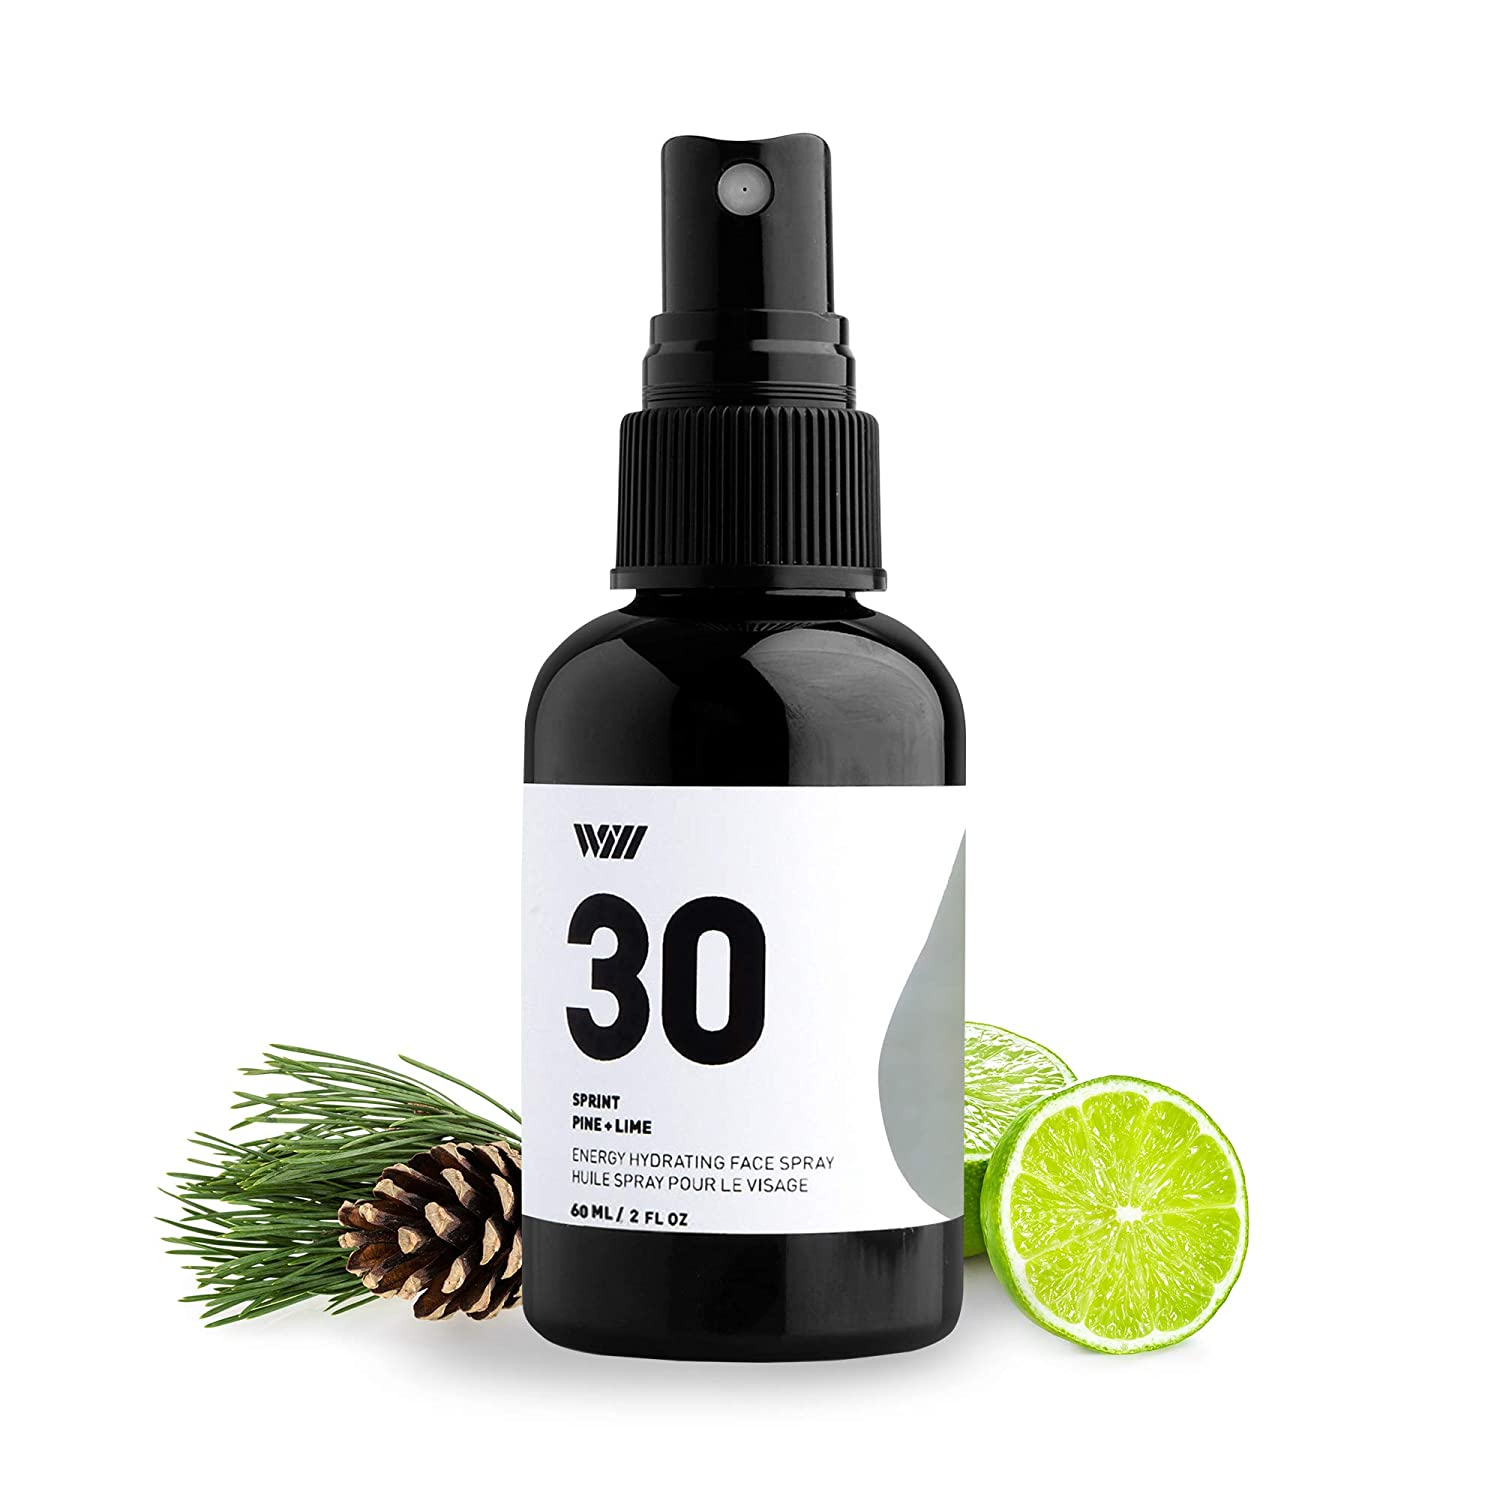 30 Hydrating Face Spray, Energizing Natural Facial Spray, Organic Face Mist Spray Infused With Essential Oils (Sprint - Pine and Lime) - Way of Will